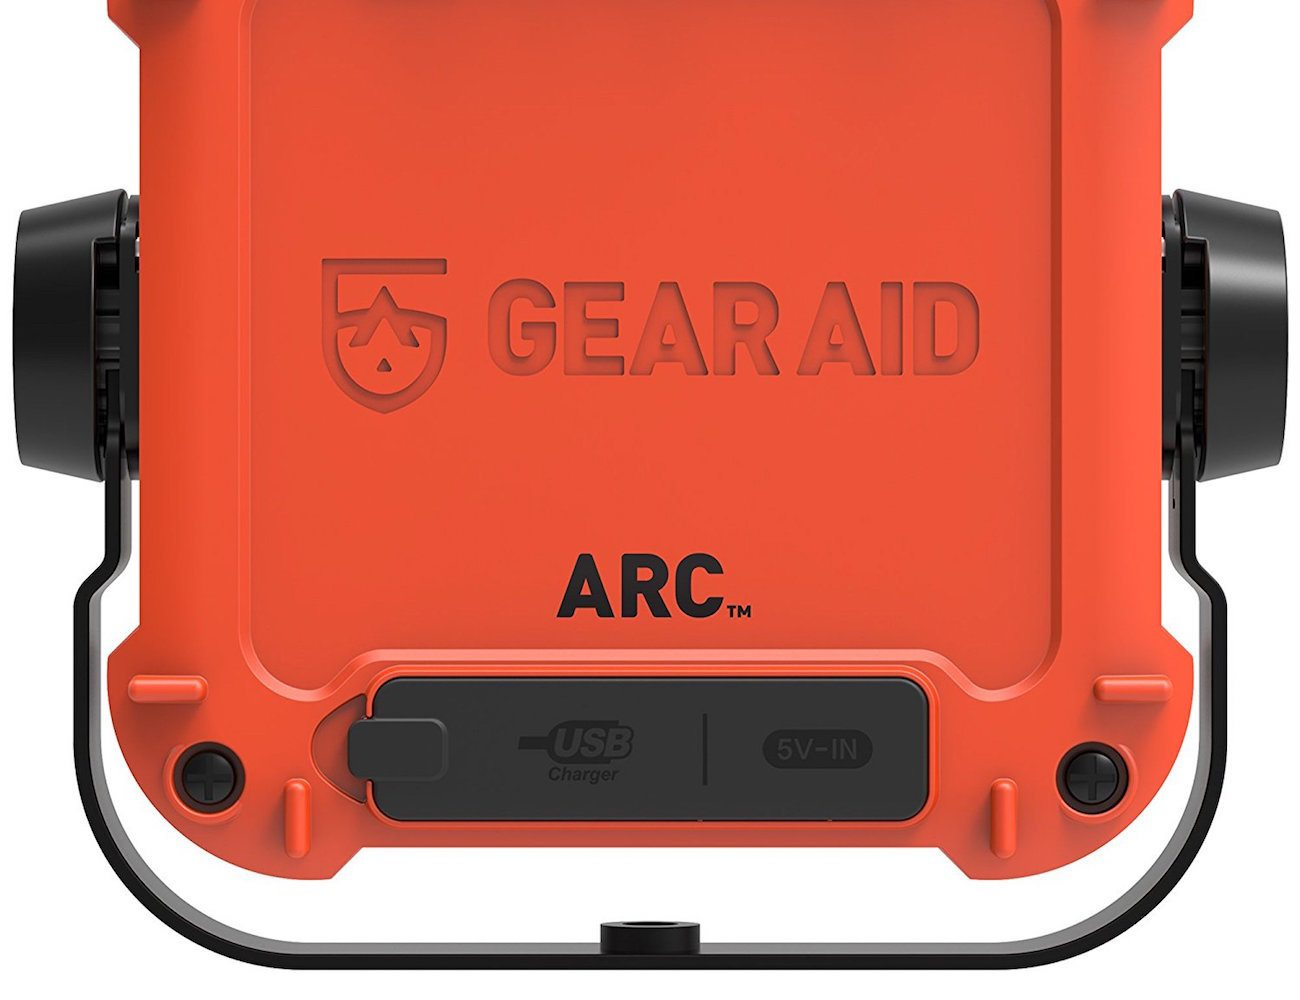 ARC Rechargeable Light and Power Station by Gear Aid